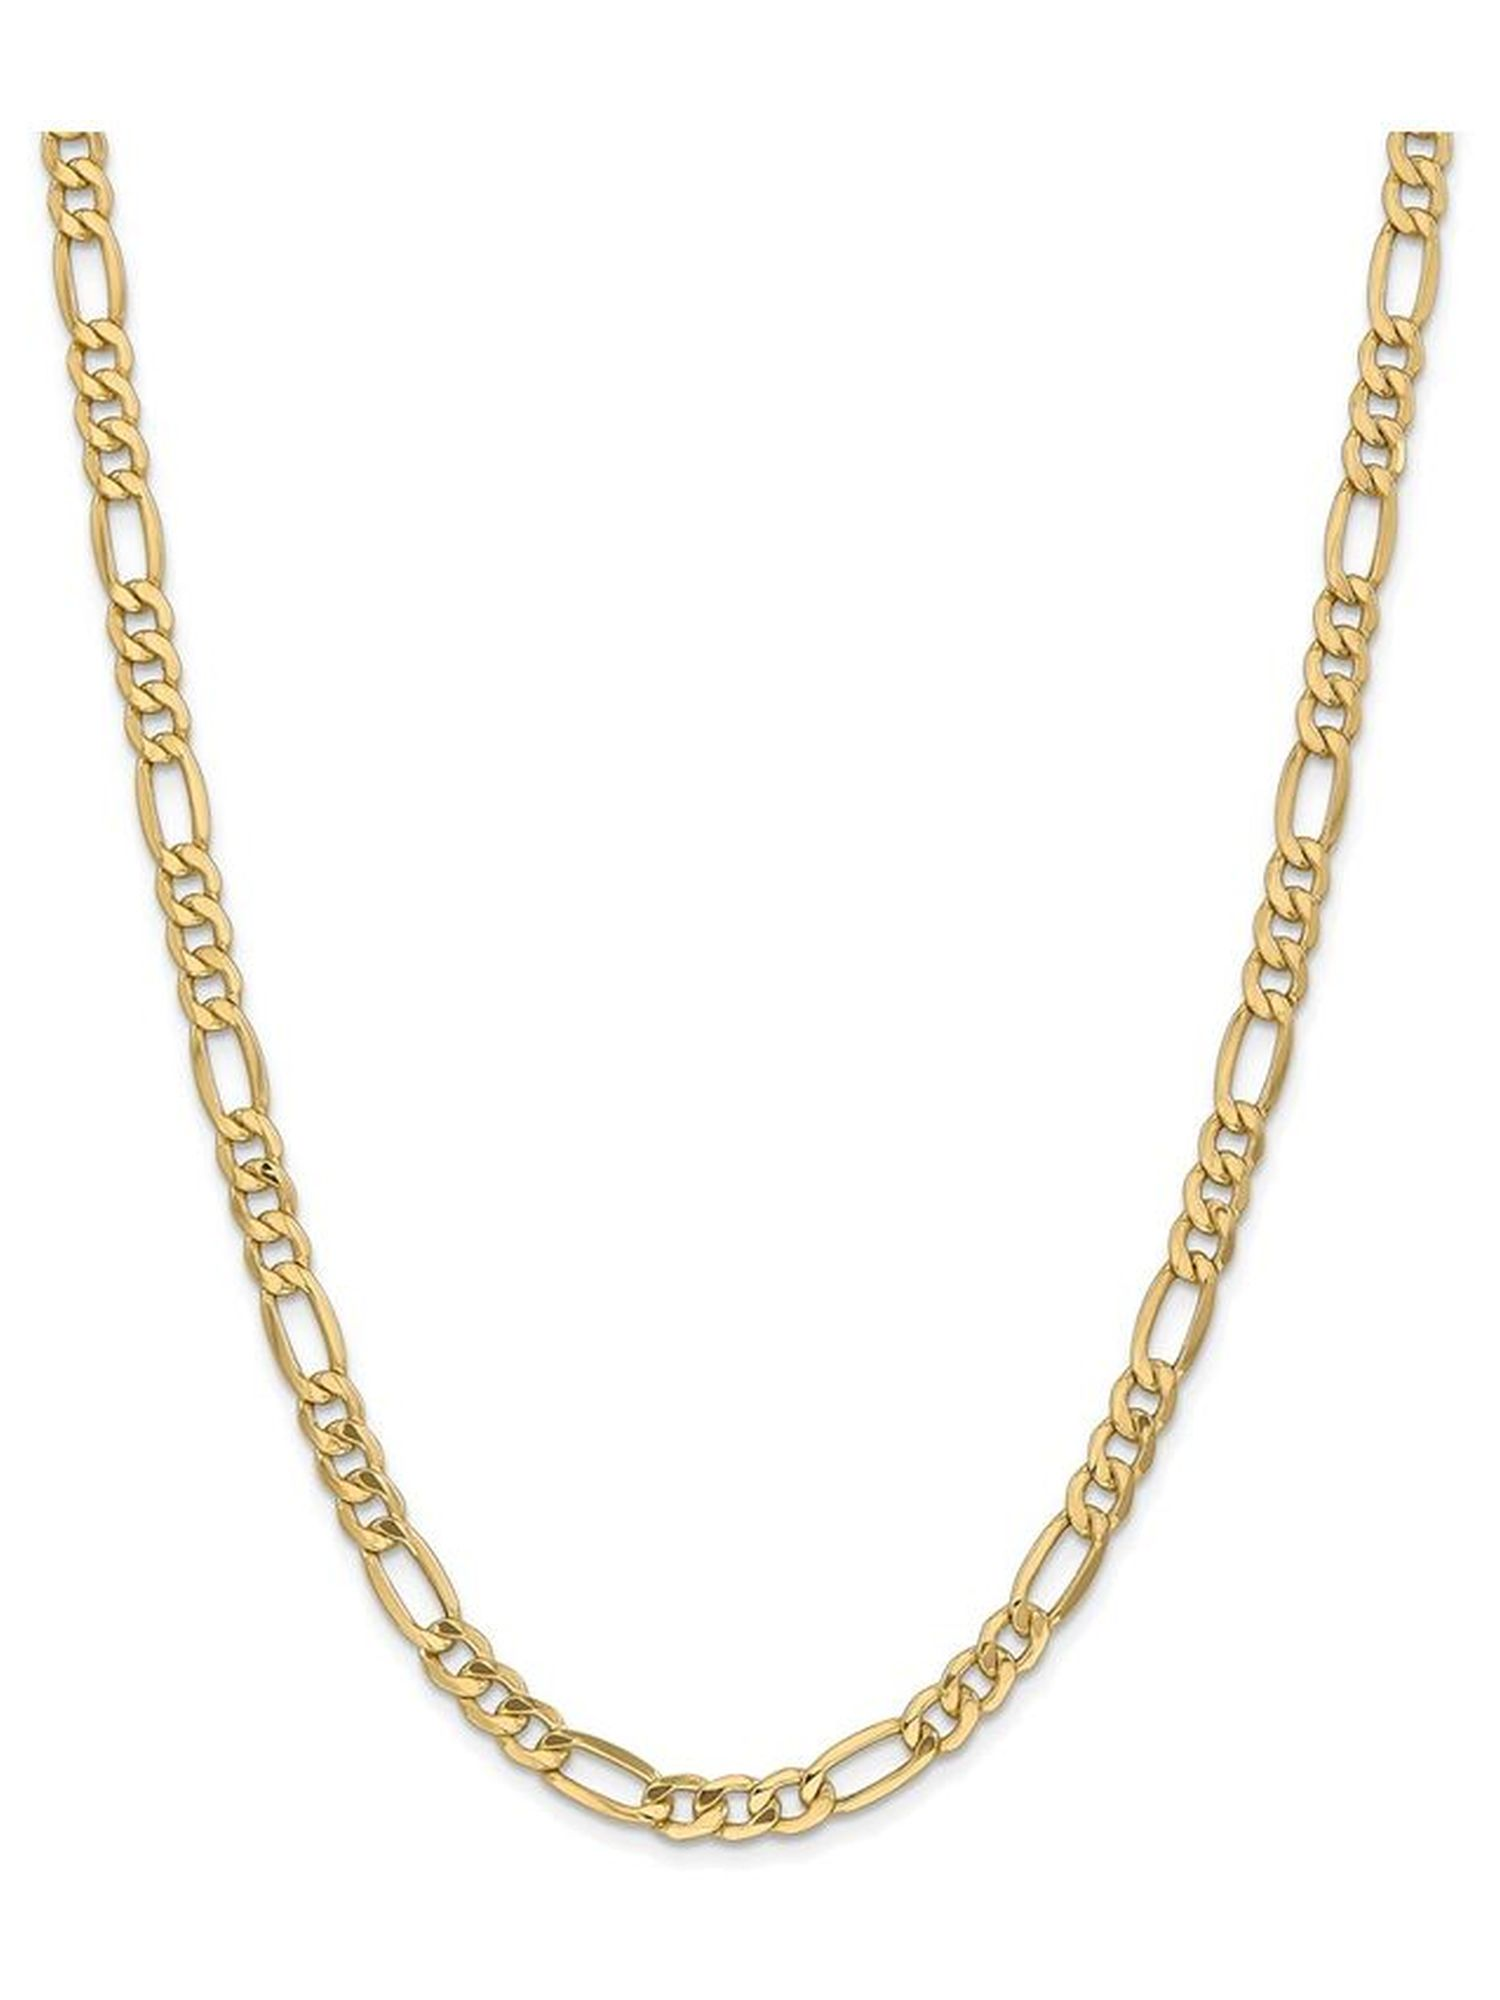 Brilliant Bijou 14k Yellow Gold 6.6mm Semi-Solid Figaro Chain Necklace 7 inches